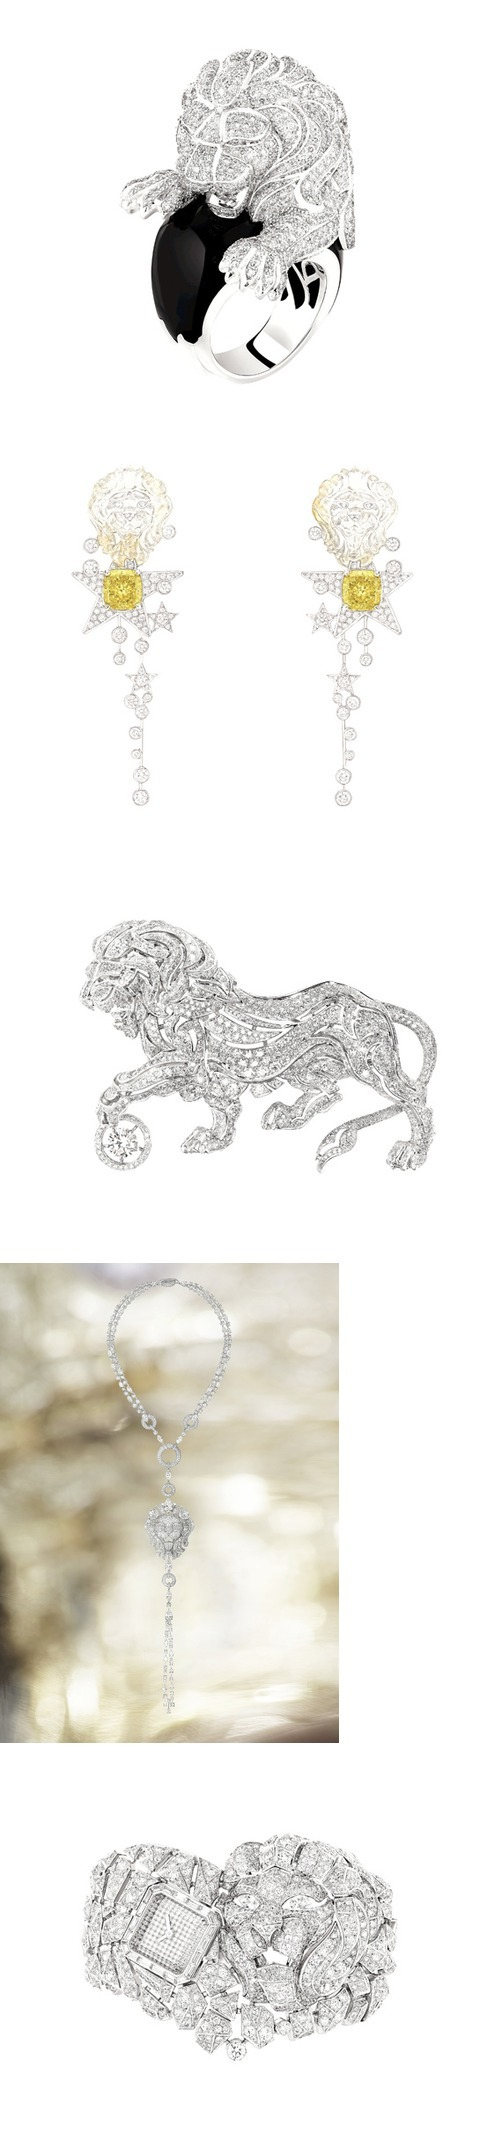 Know a deserving Leo for Chanel's Sign of the Lion